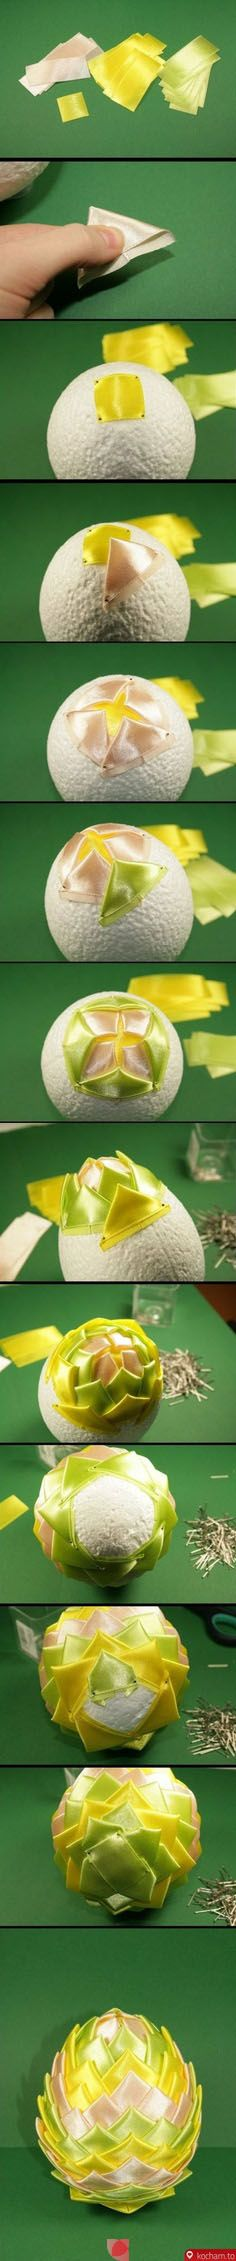 Folded Star Ornament